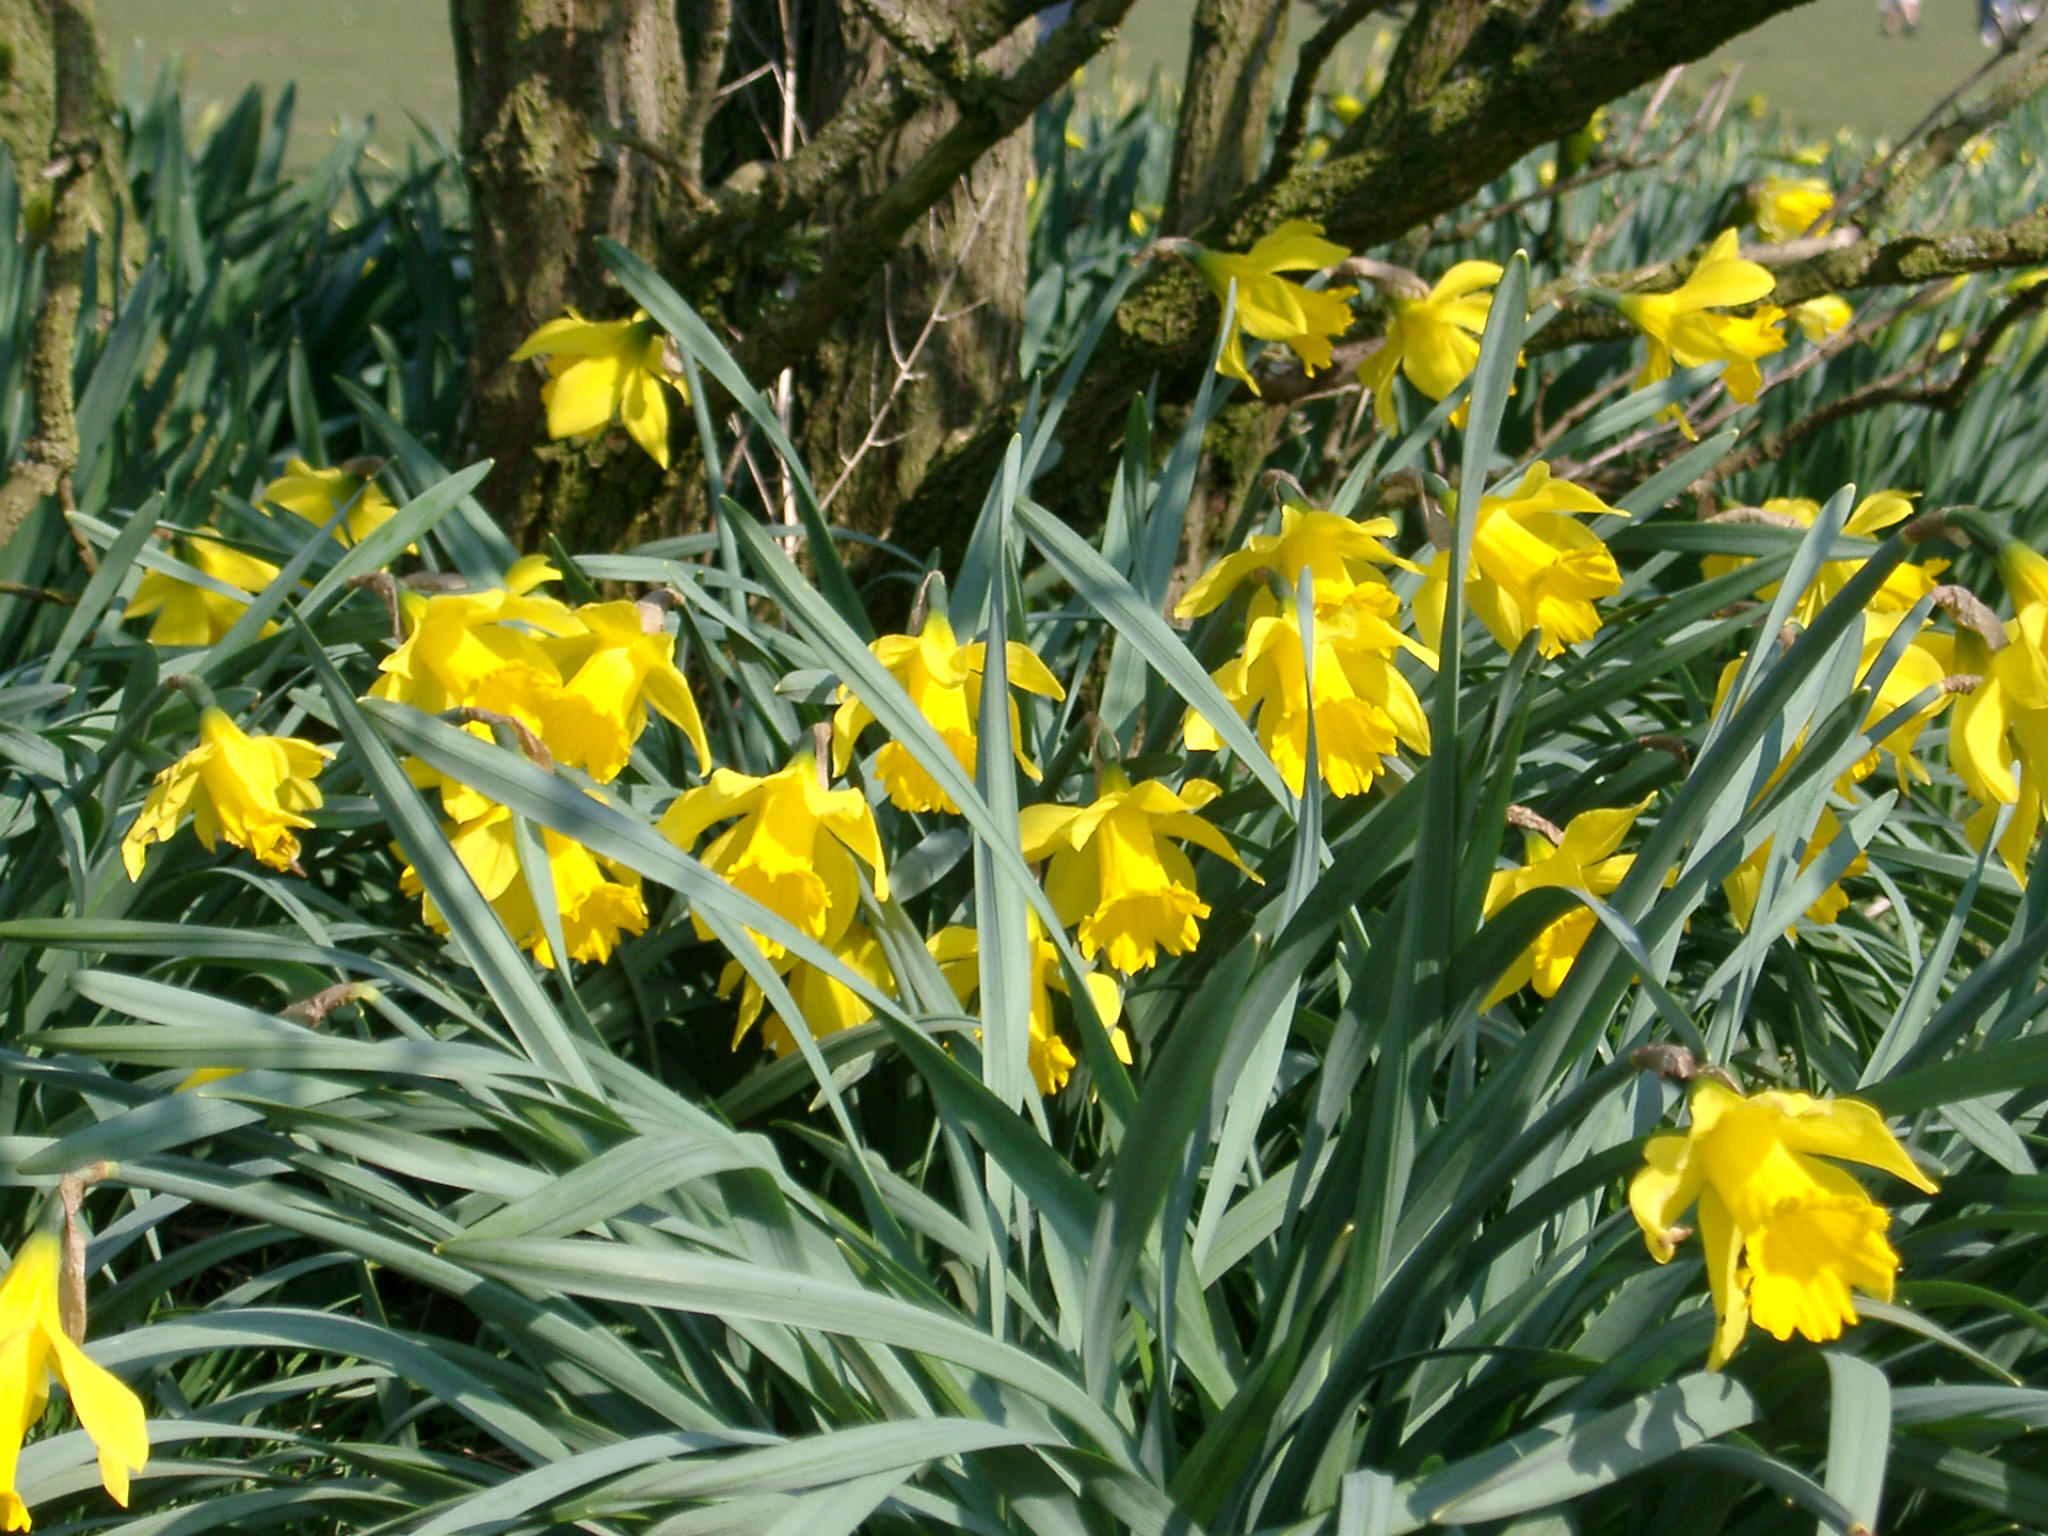 Fresh Yellow Daffodil Flowers with Green Leaves in the Garden. Captured on a Sunny Weather.